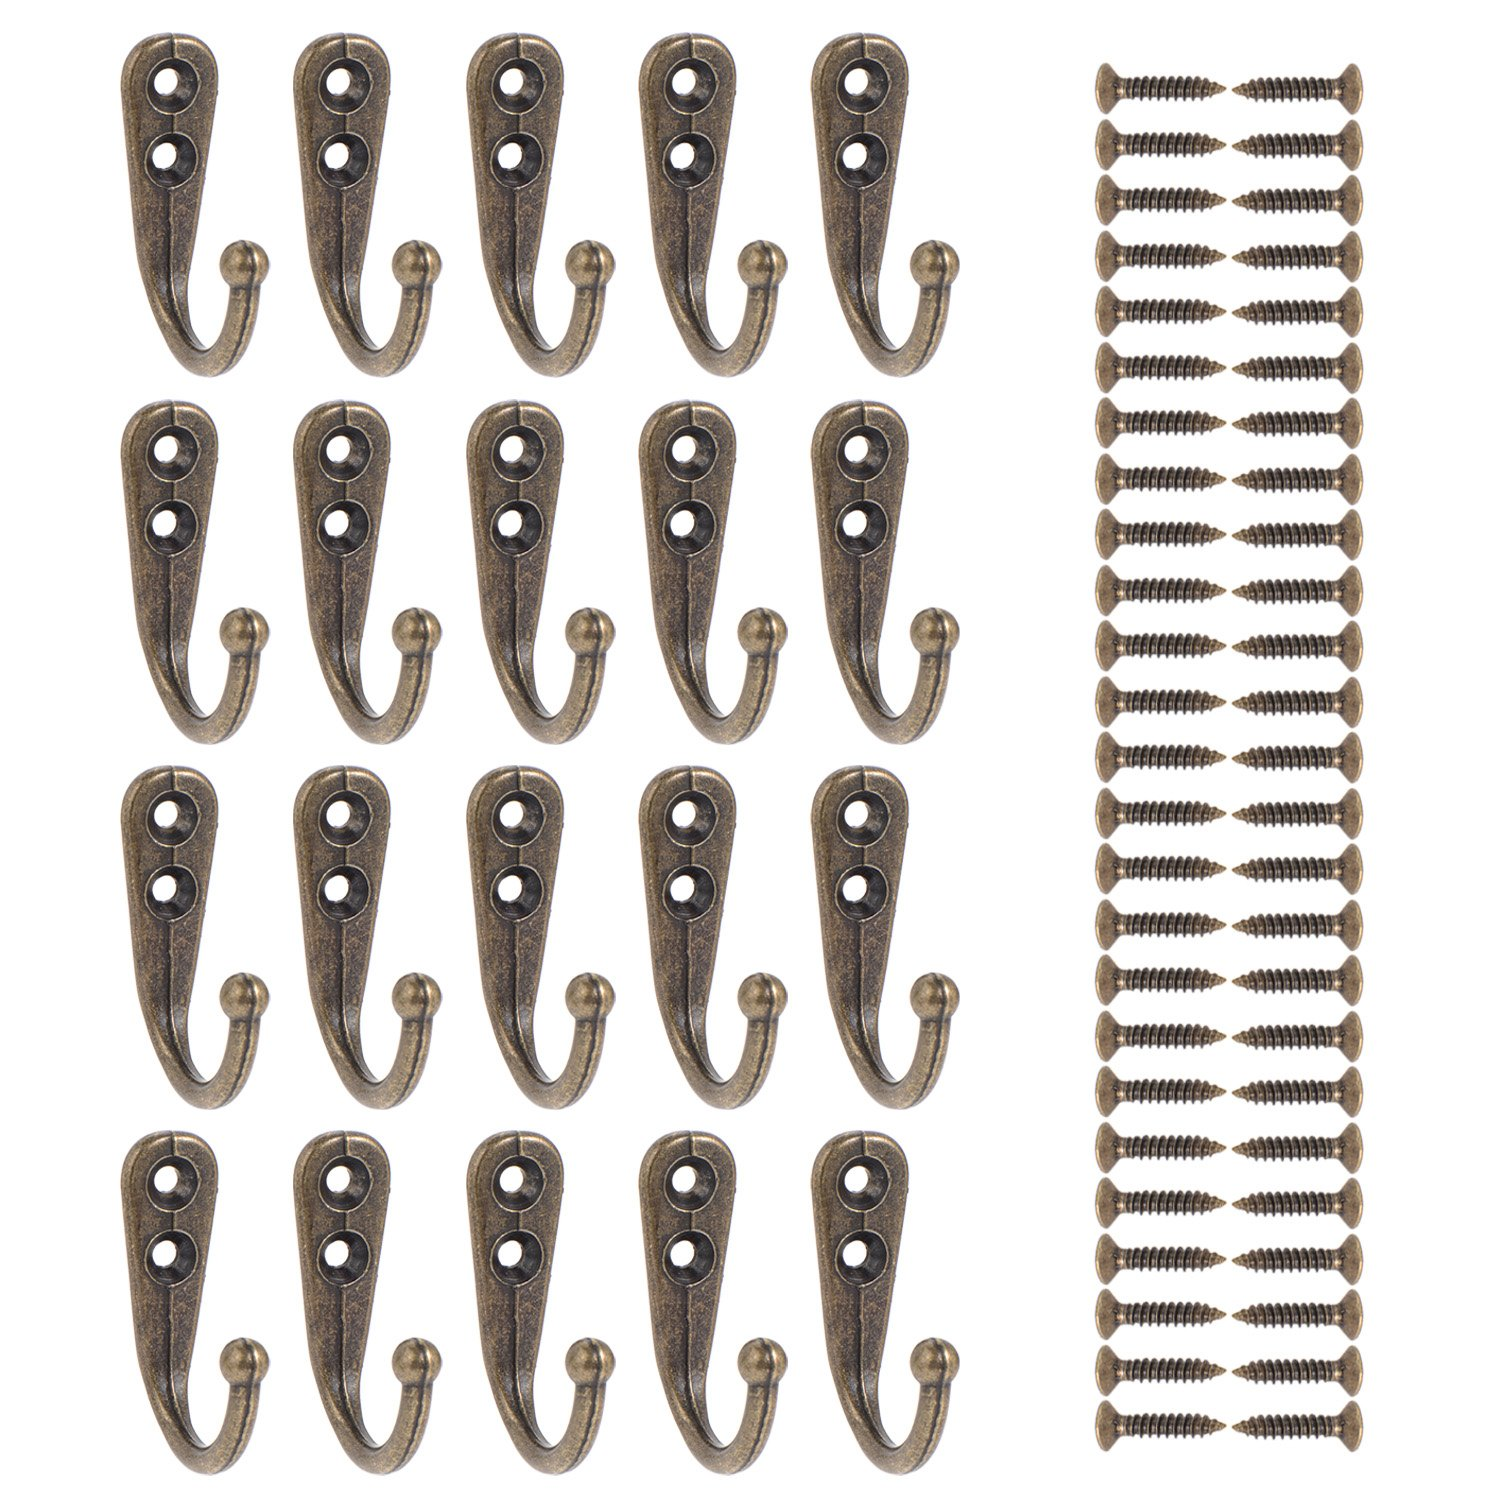 eBoot 20 Pieces Wall Mounted Hook Robe Hooks Single Coat Hanger and 50 Pieces Screws (Black)